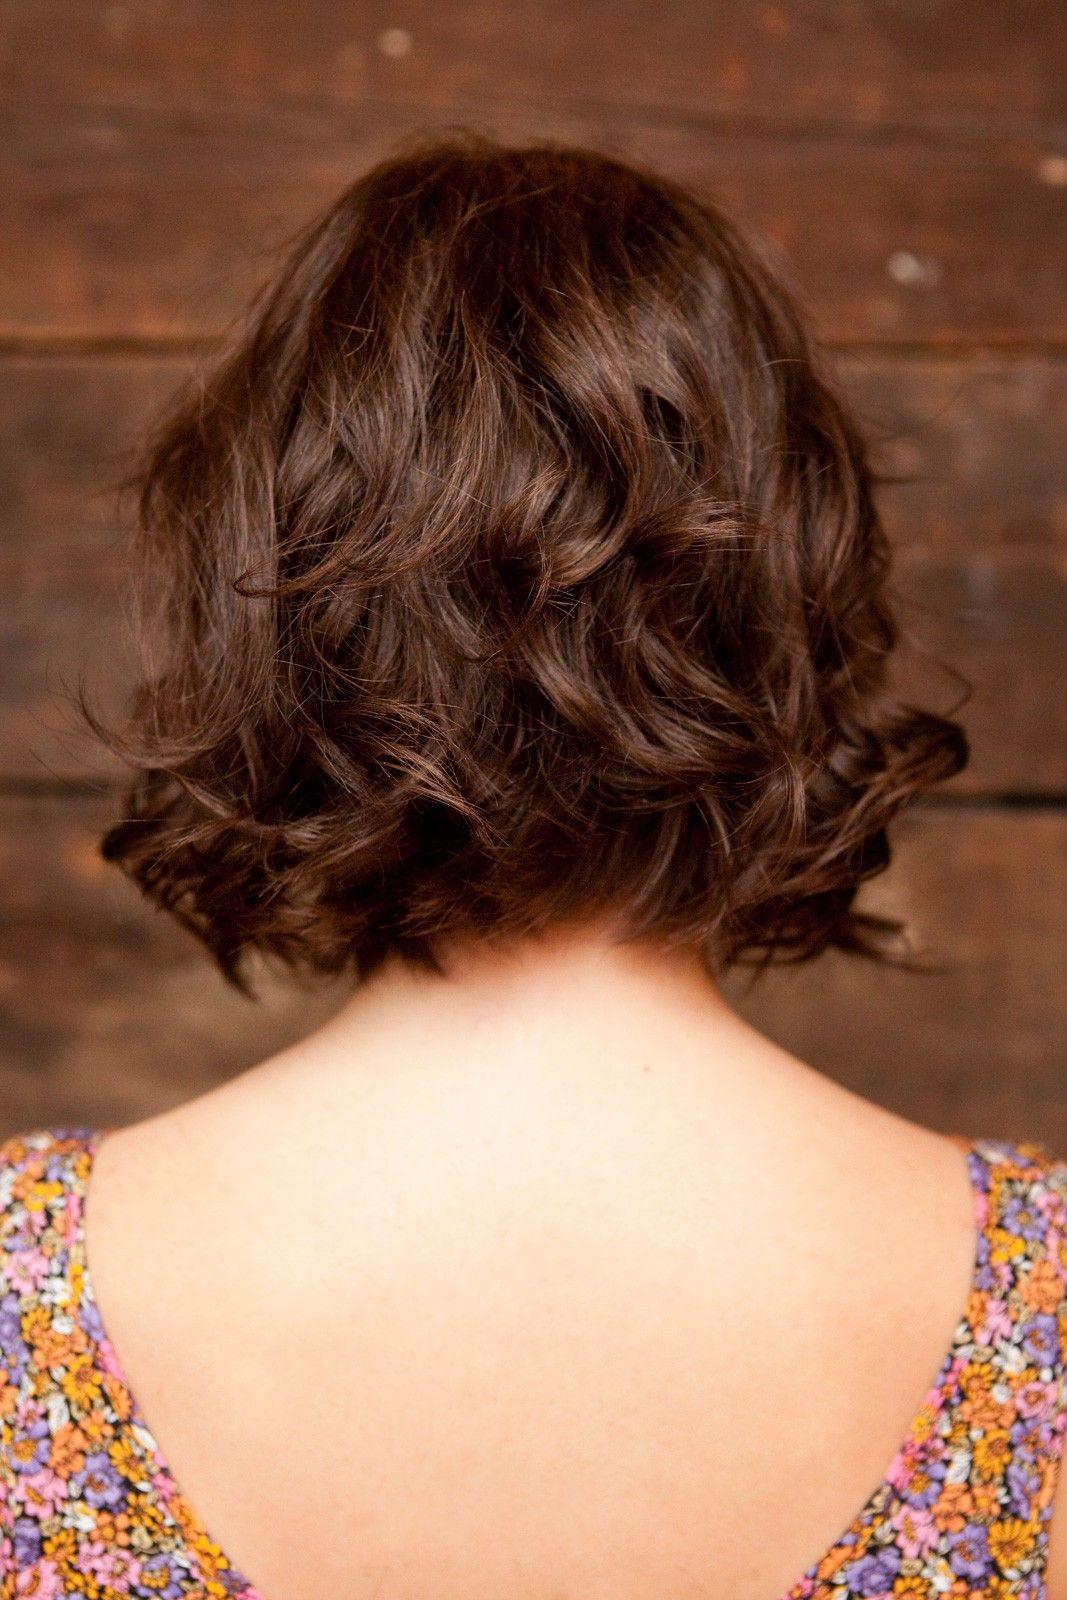 The Best Hair Salons In New York City Where To Get The Best Fall